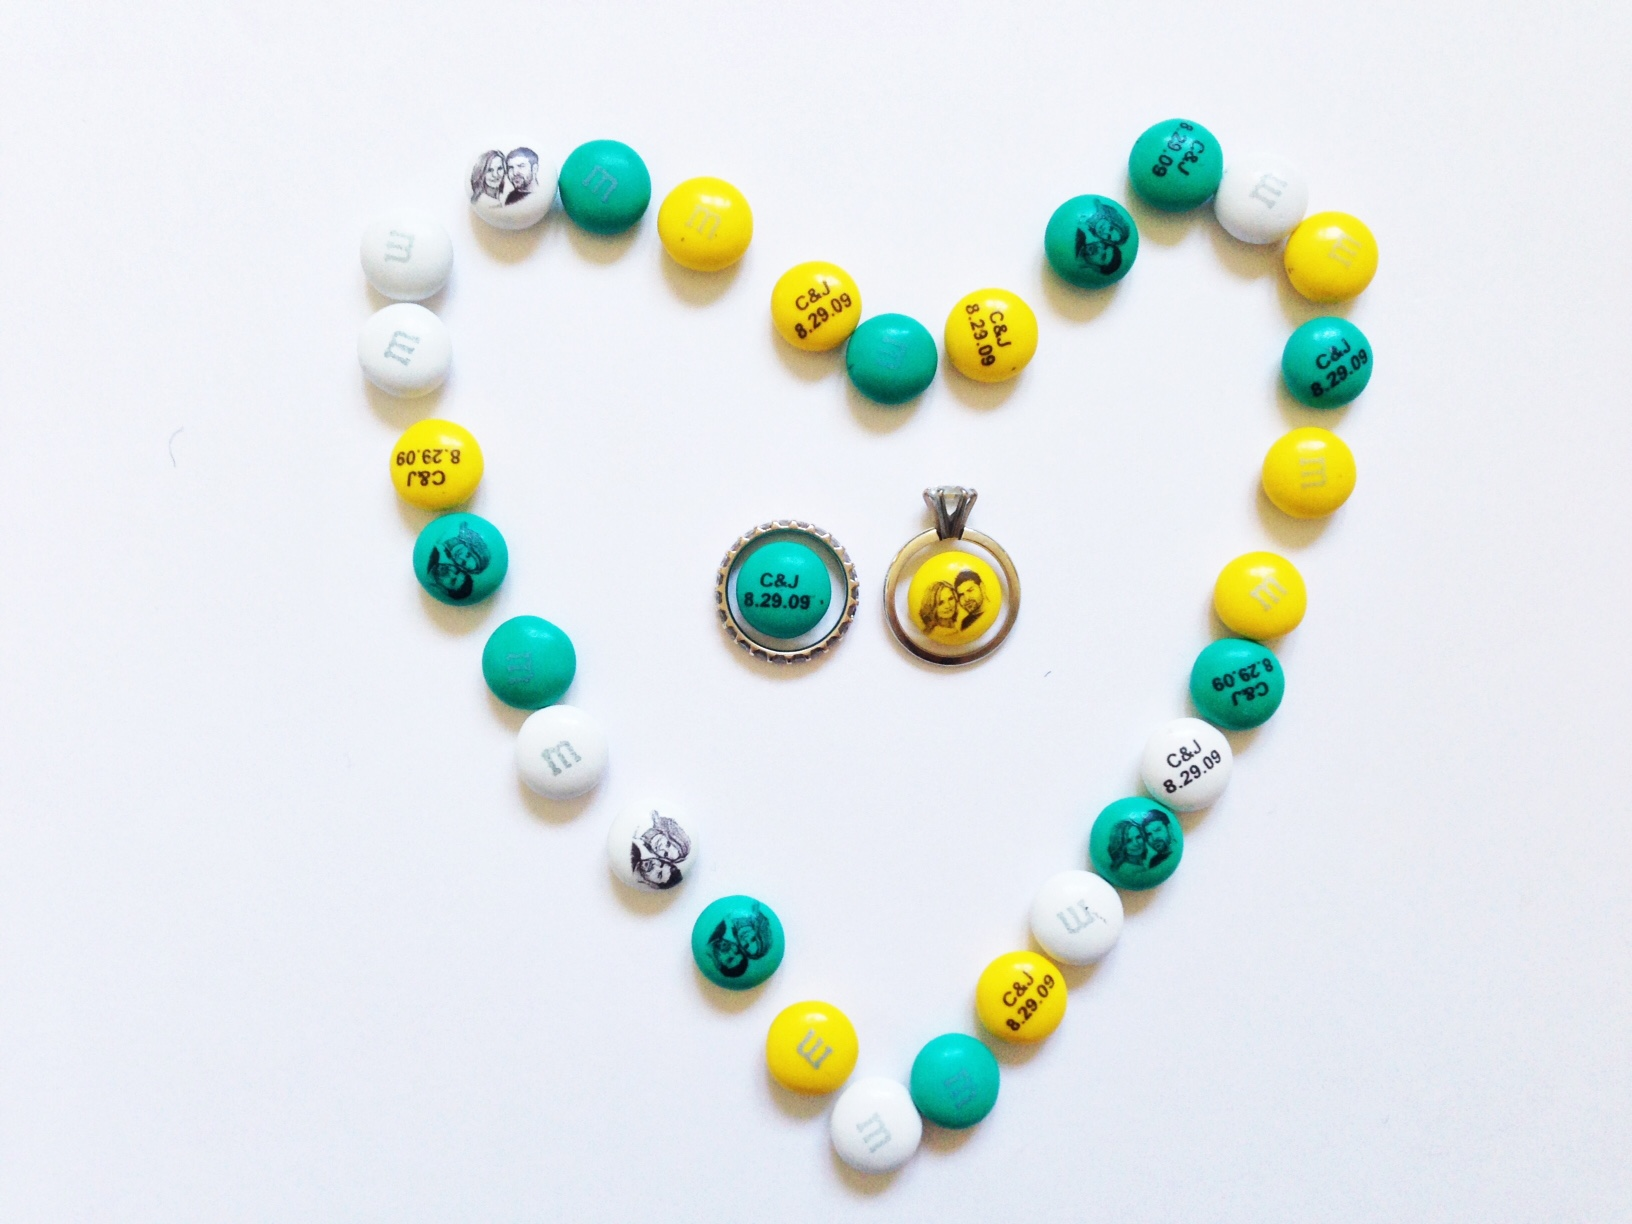 Personalize Your Wedding With M&M's